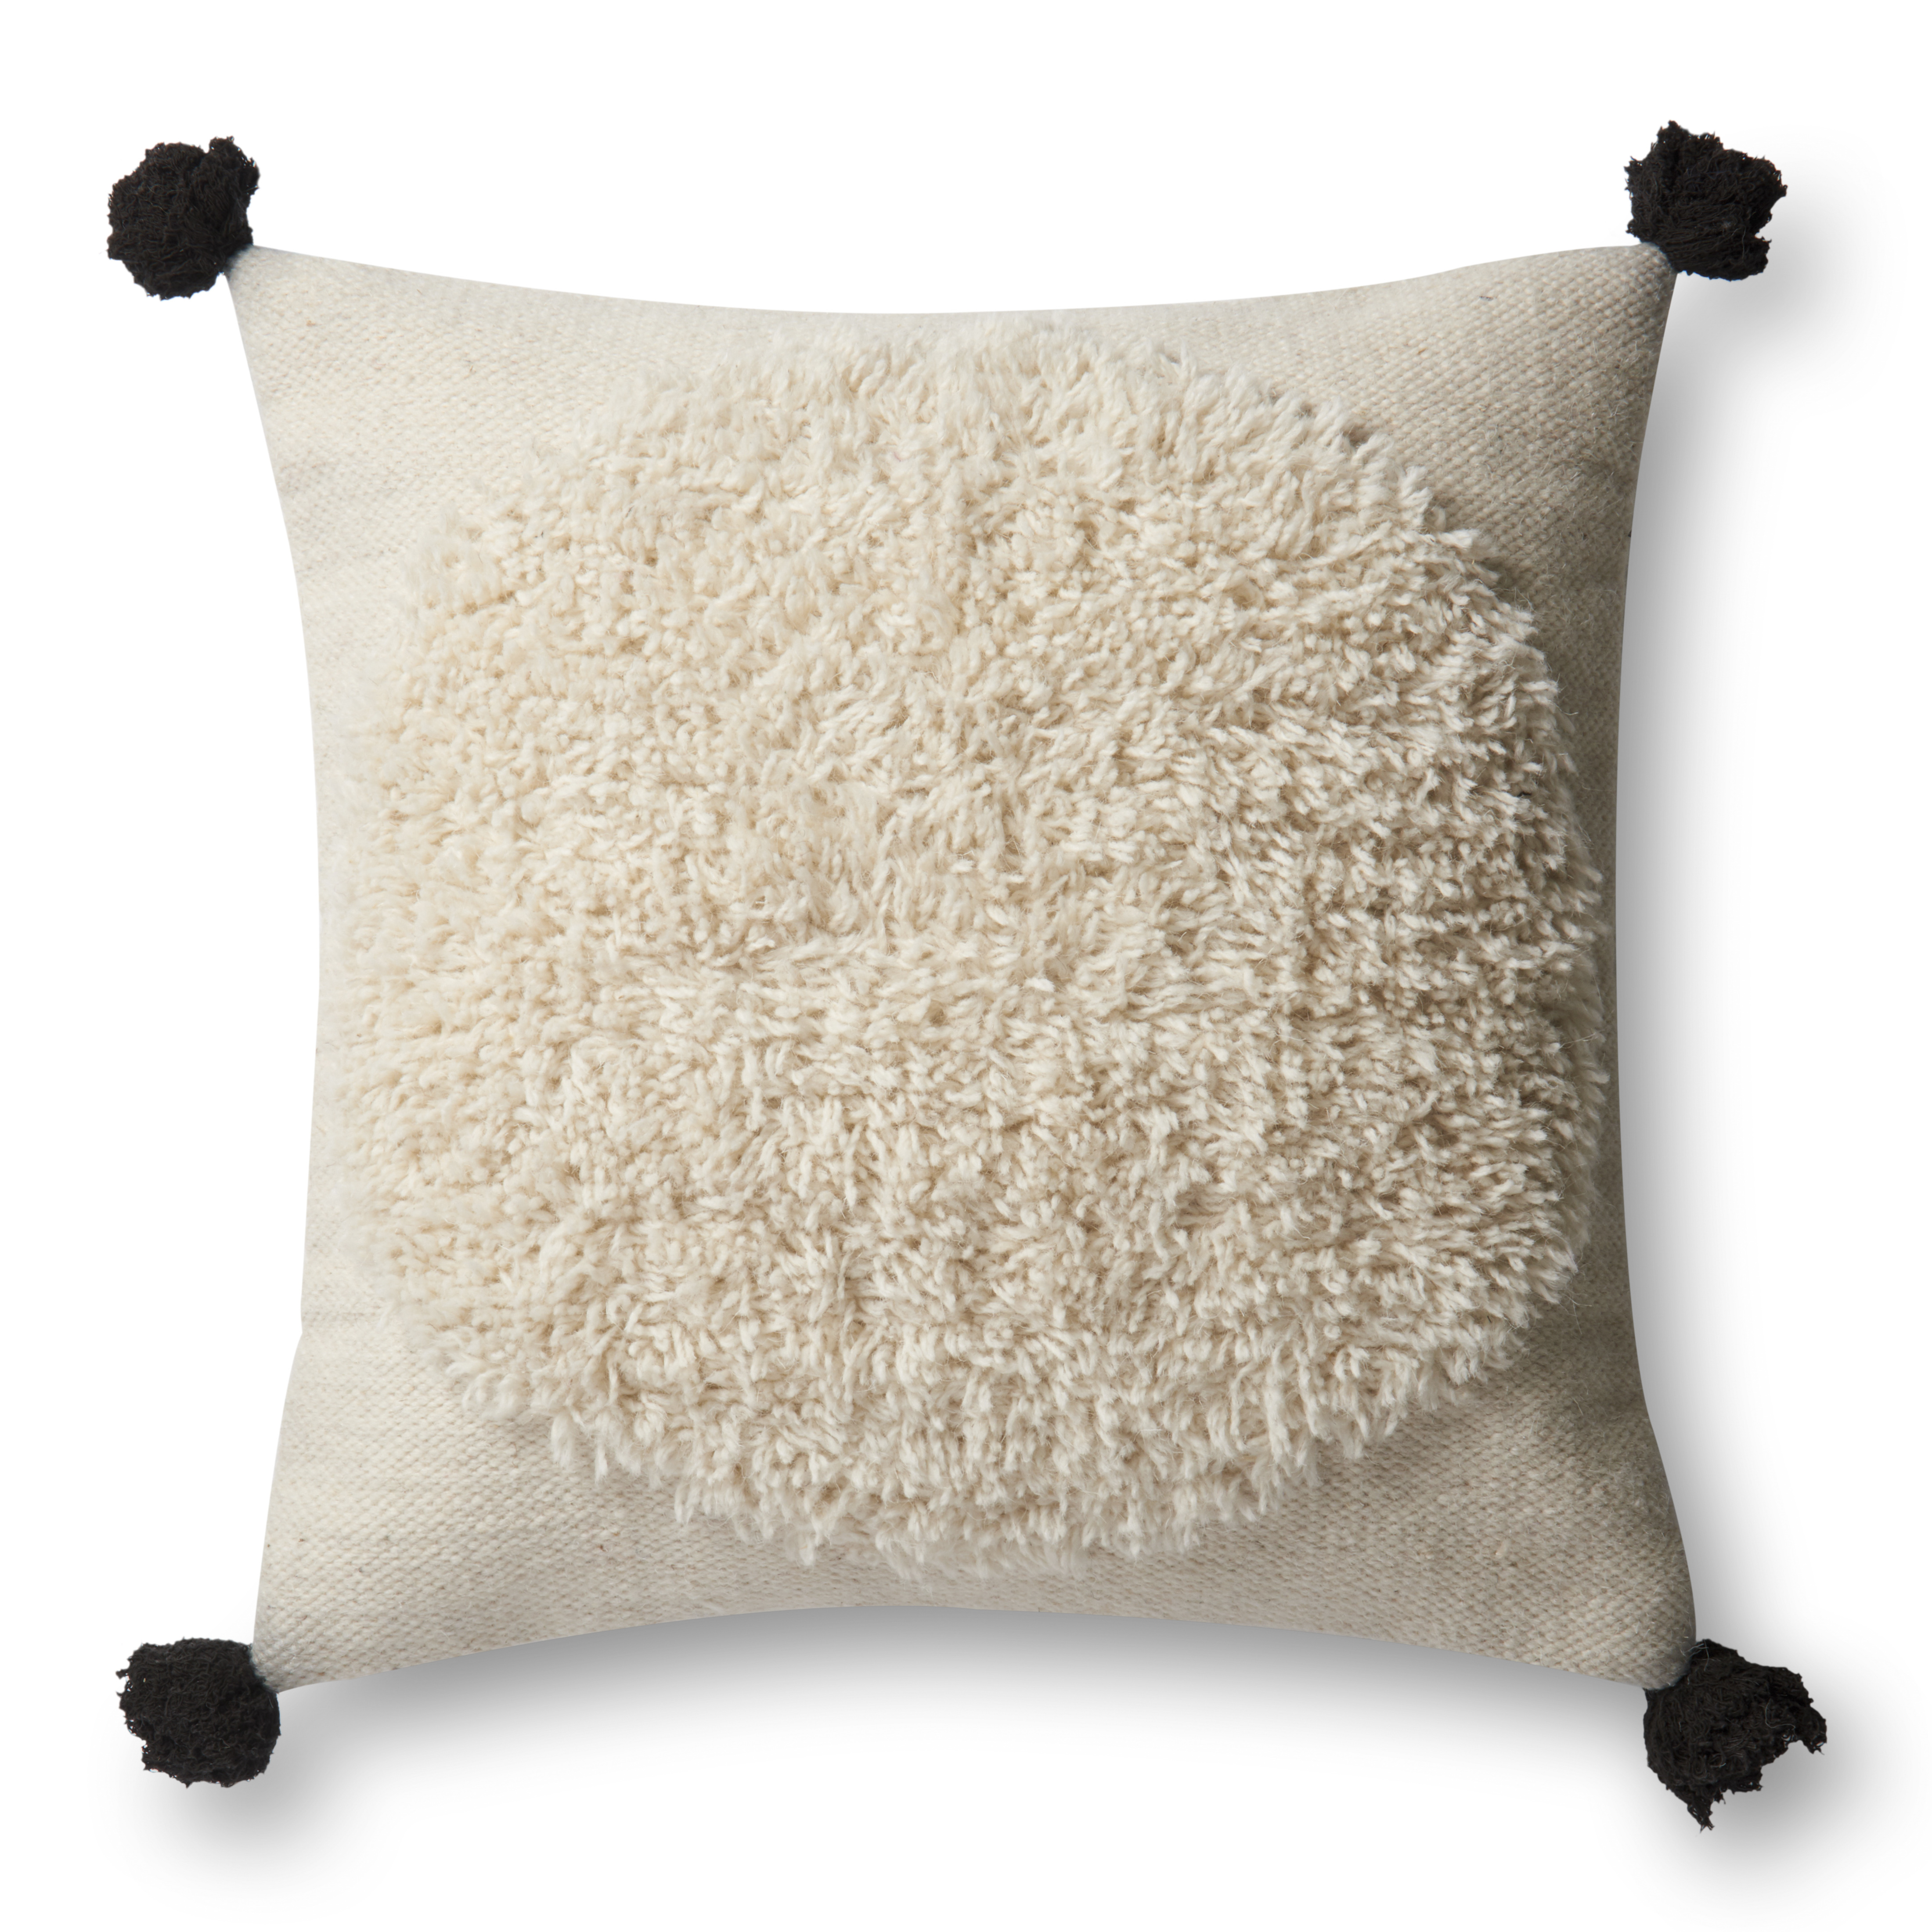 """Justina Blakeney x Loloi PILLOWS P0483 Ivory / Black 13"""" x 21"""" Cover Only"""